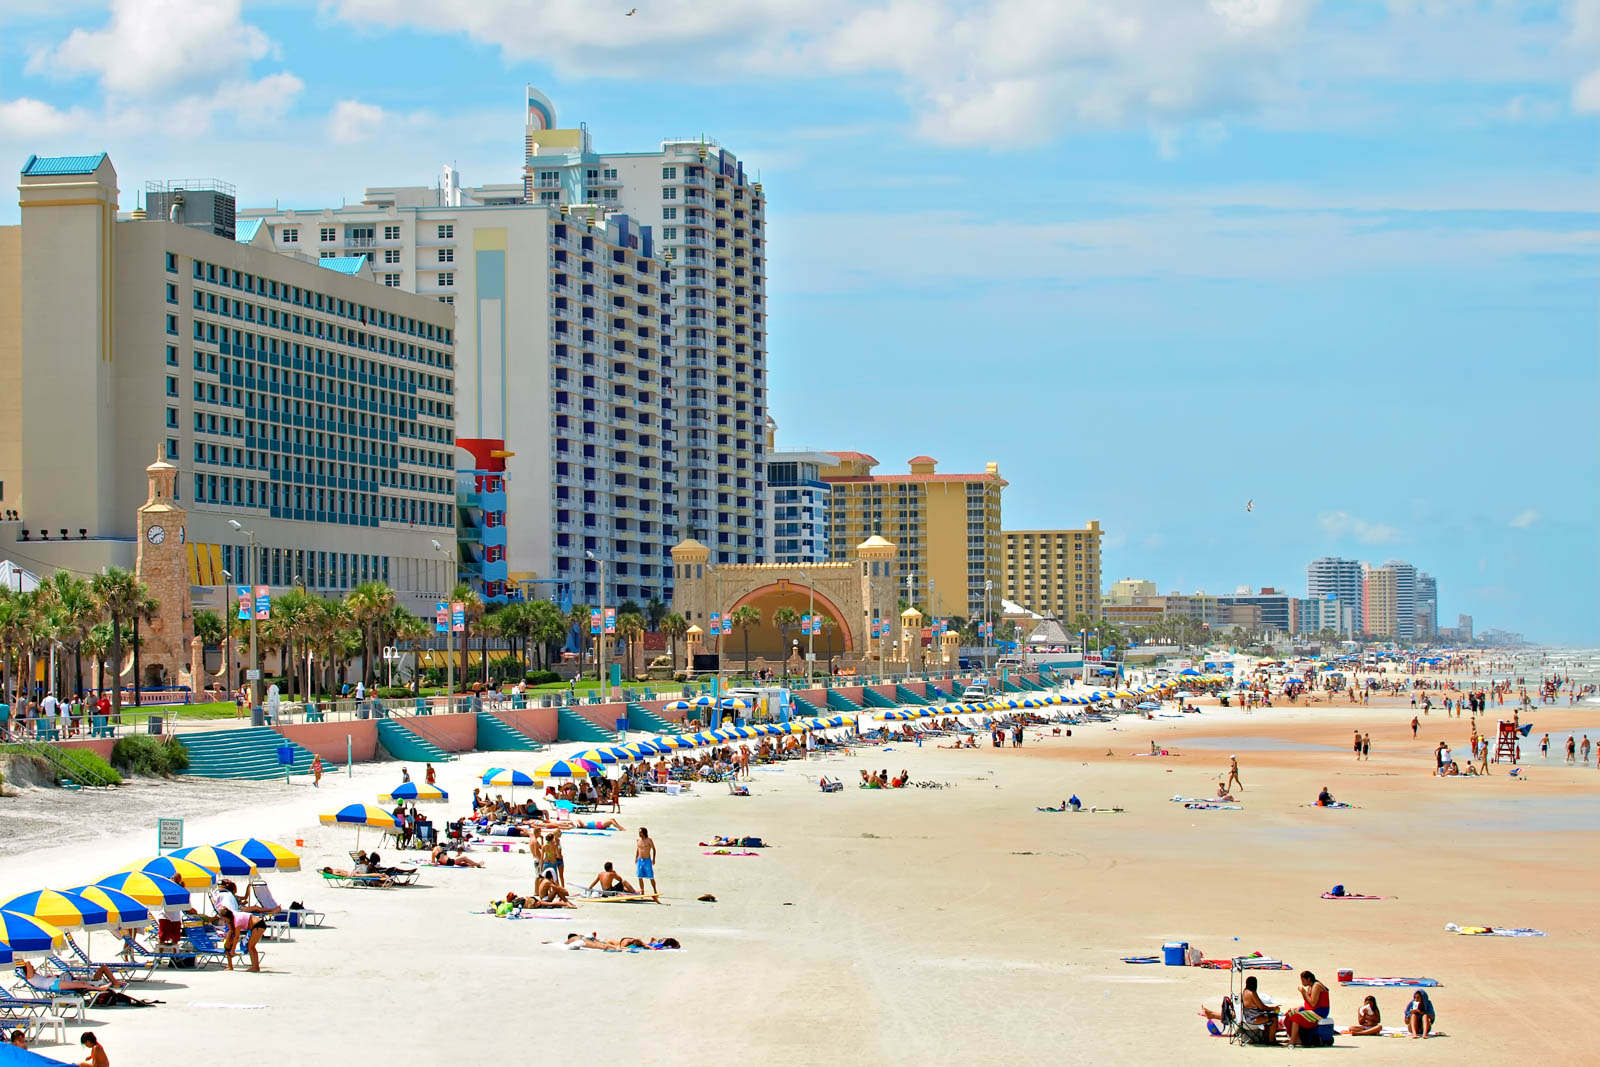 Daytona Beach Florida during a hot summer day. There are plenty of cheap things to do in Orlando such as a visit north to Daytona Beach which people don't consider to be one of the fun things to do in Orlando day trips.